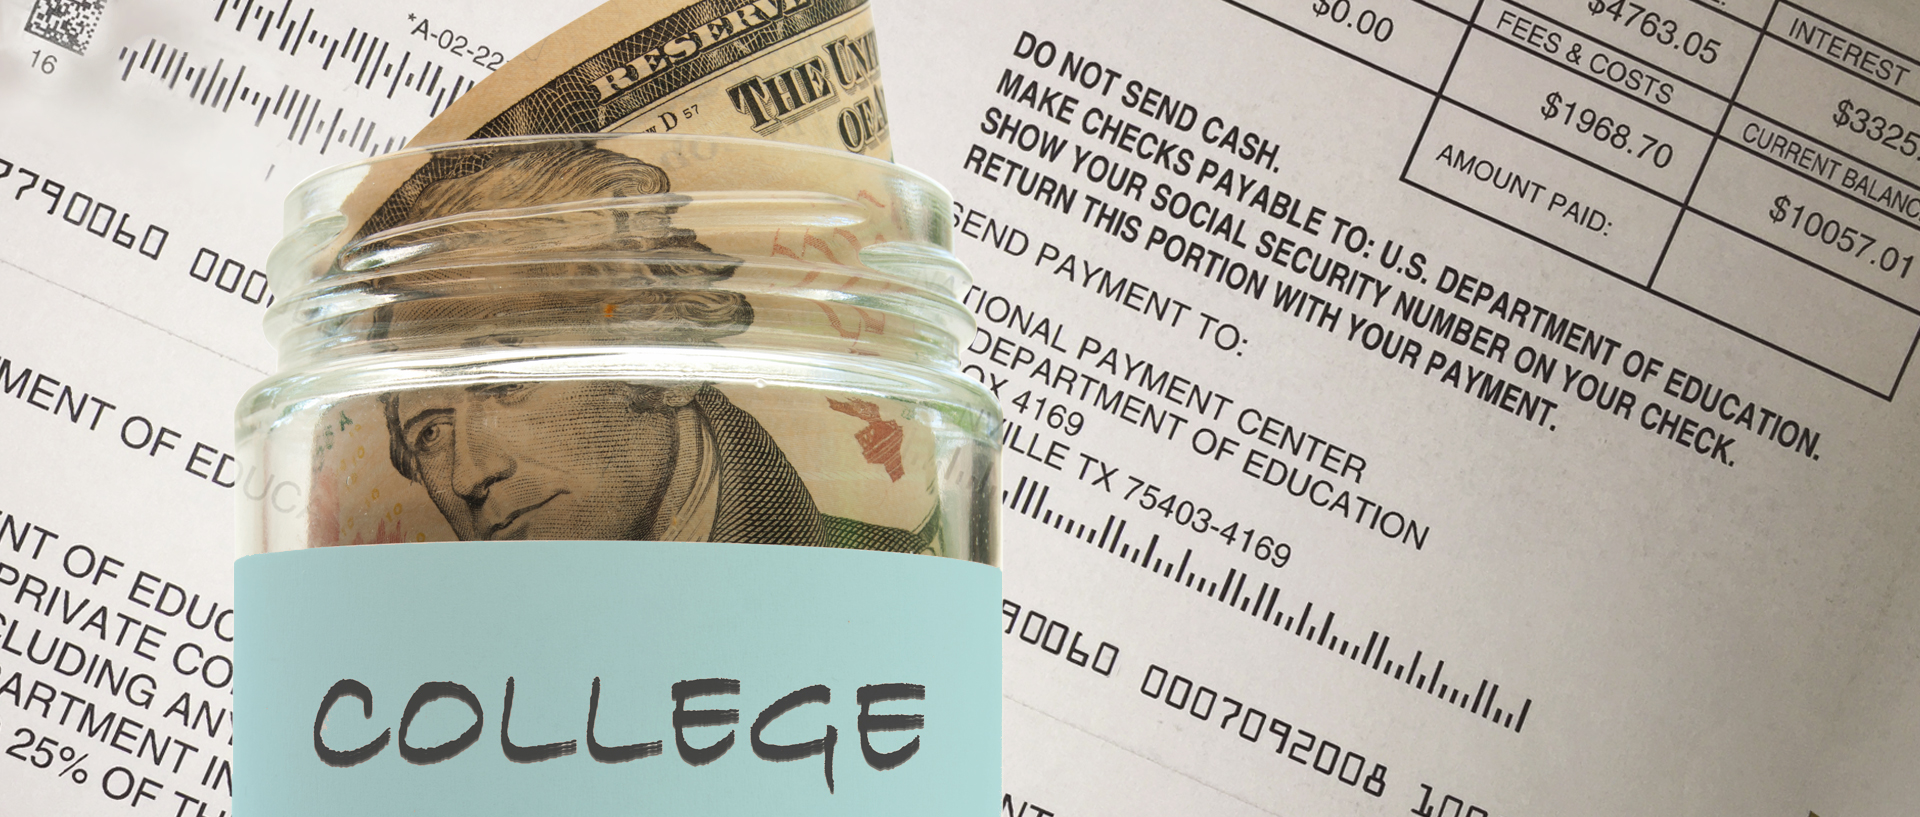 Where can I get money from to continue to attend college?